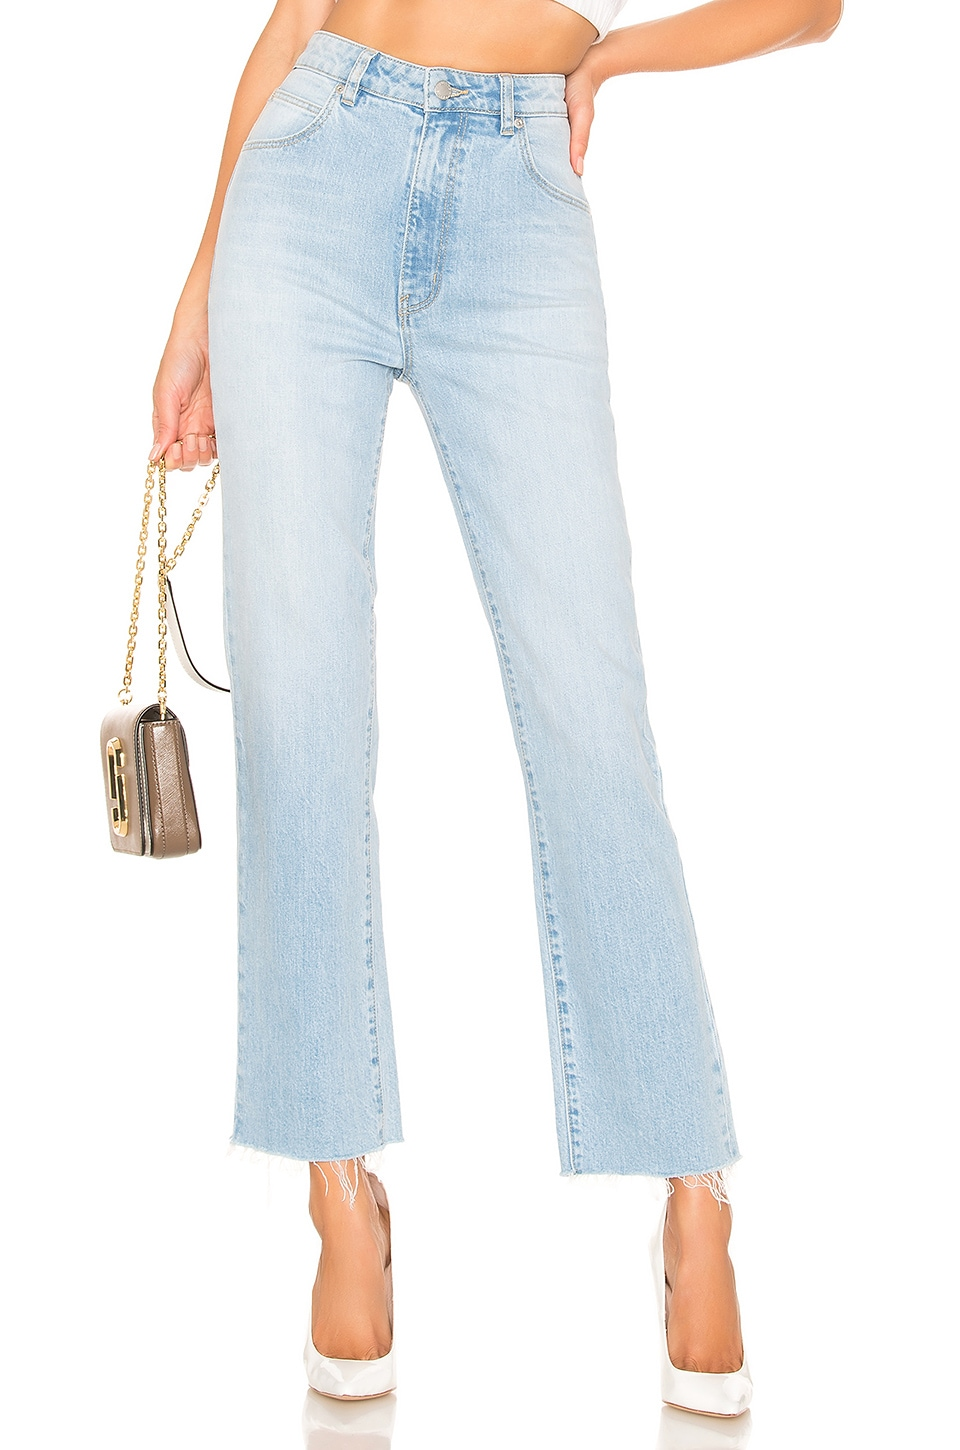 ROLLA'S JEAN DROIT ORIGINAL STRAIGHT